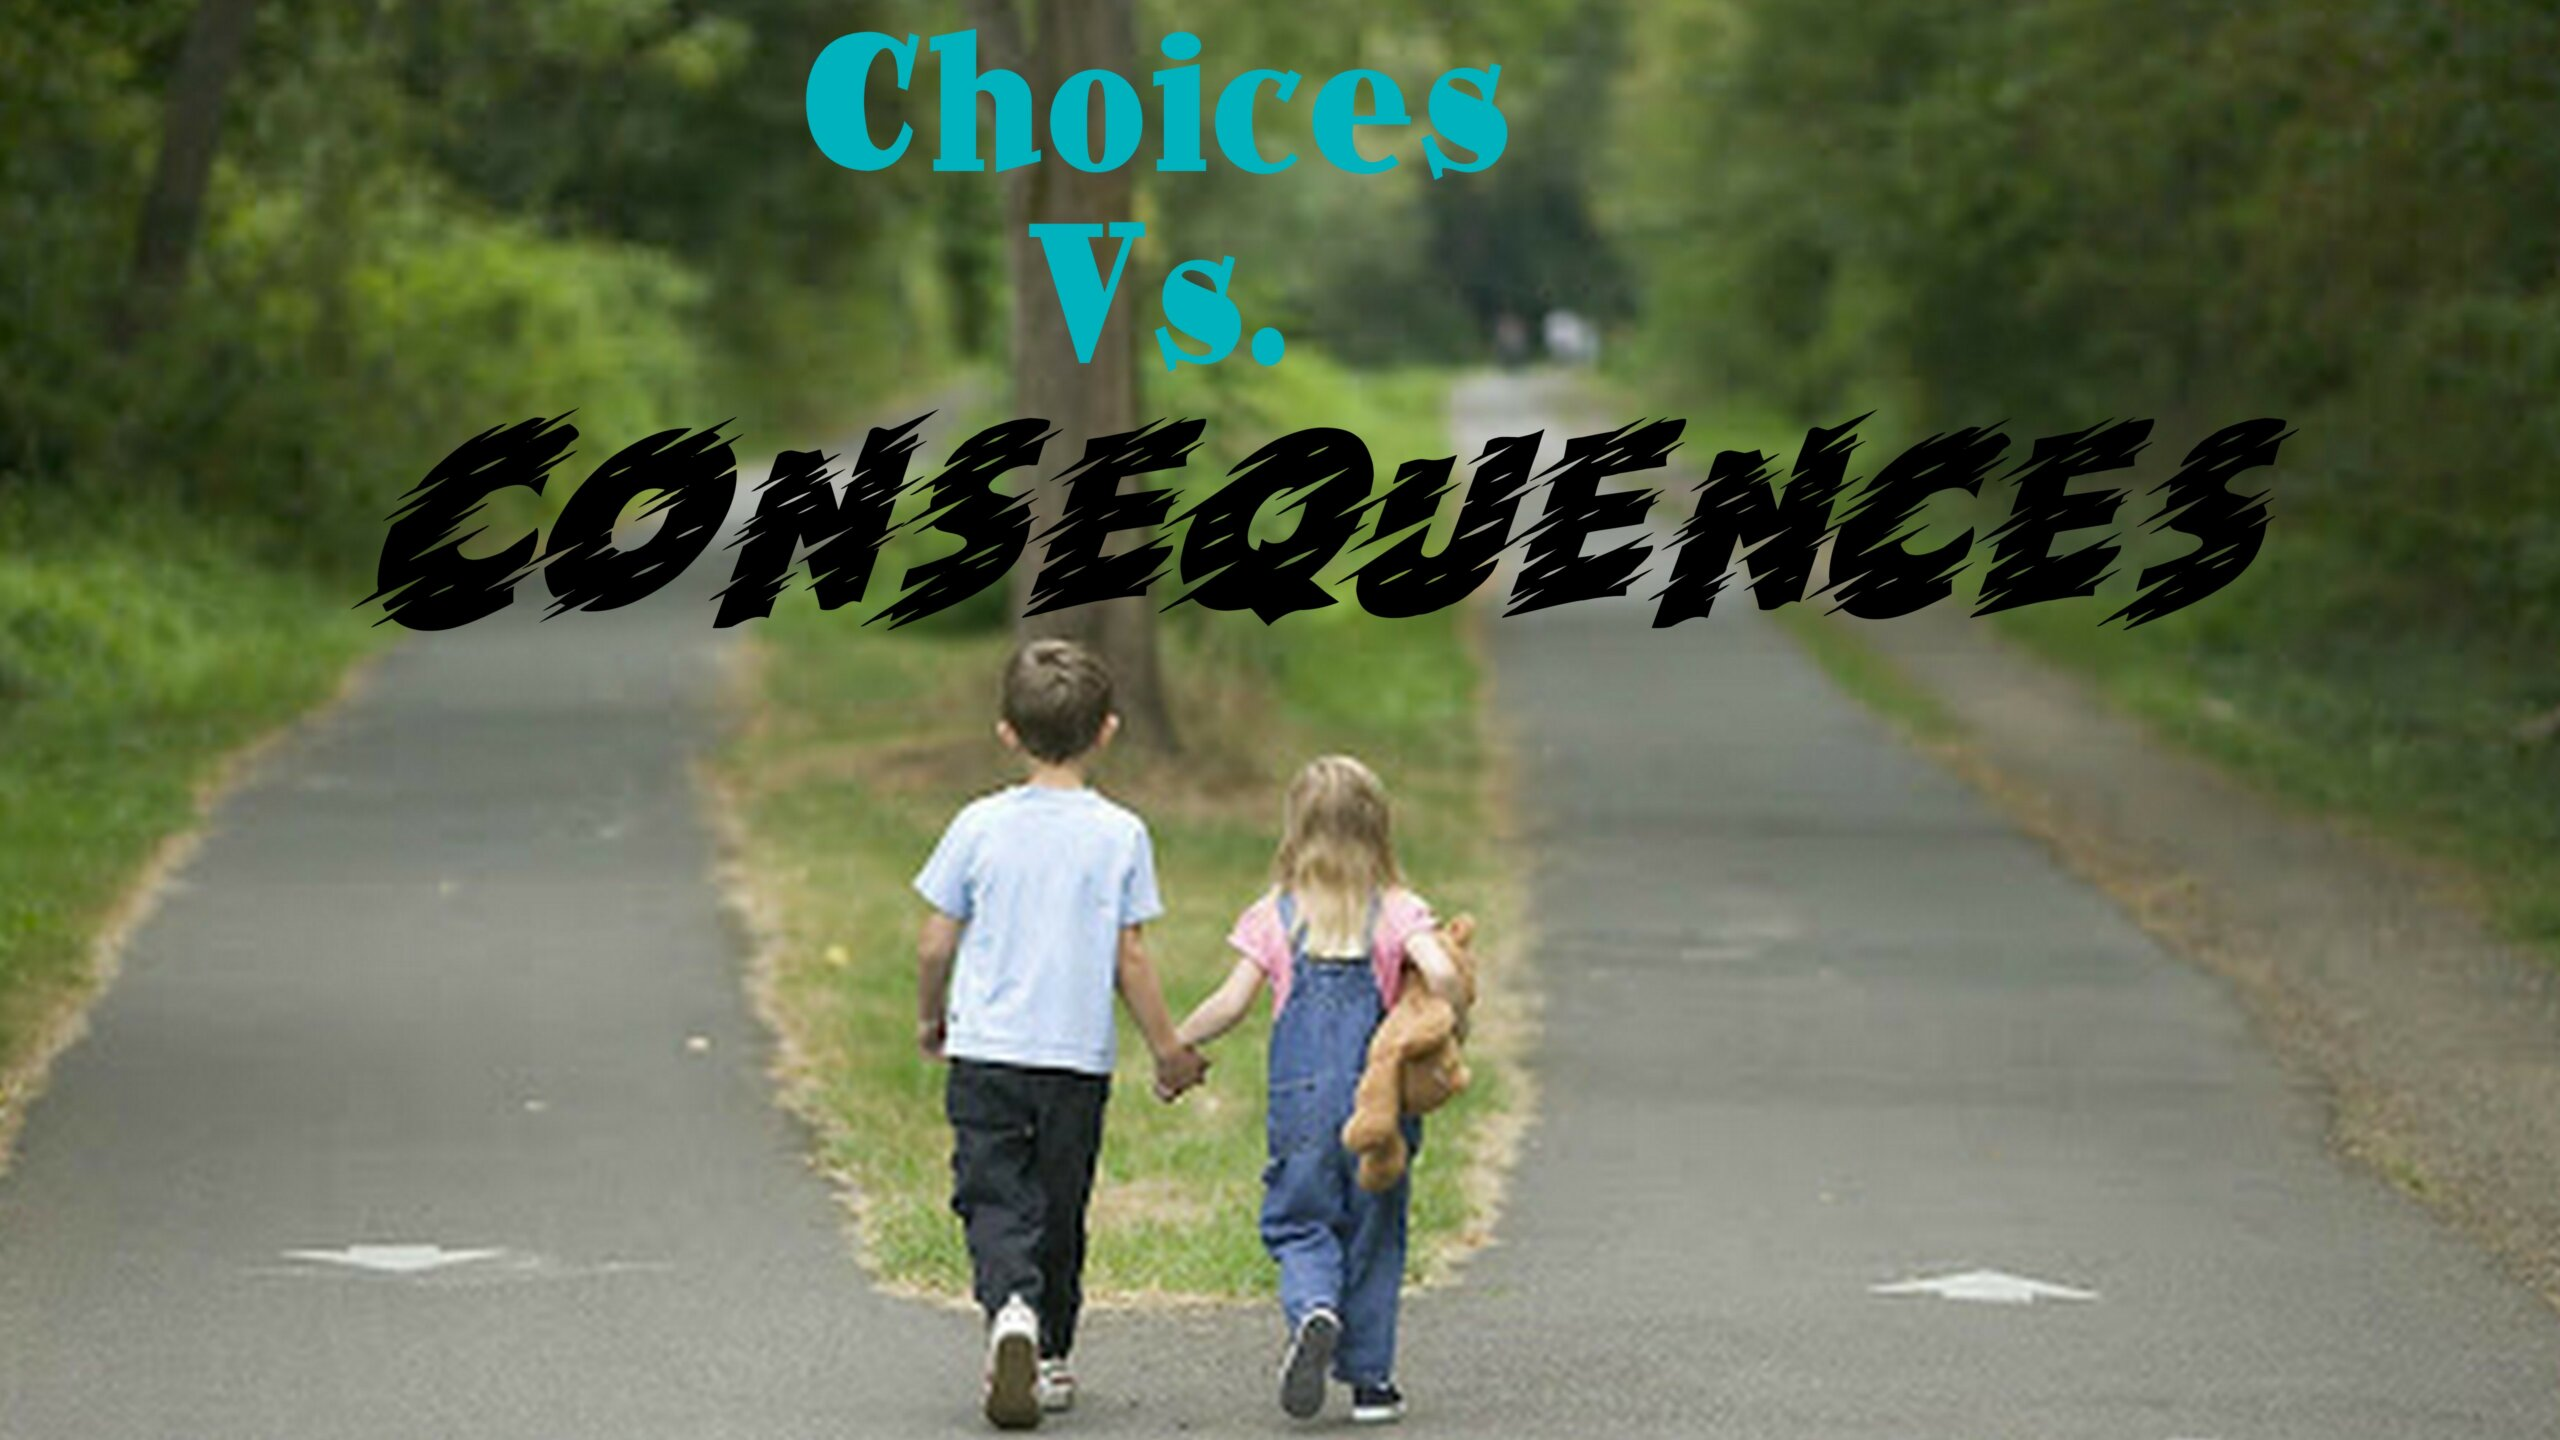 Choices Vs. Consequences